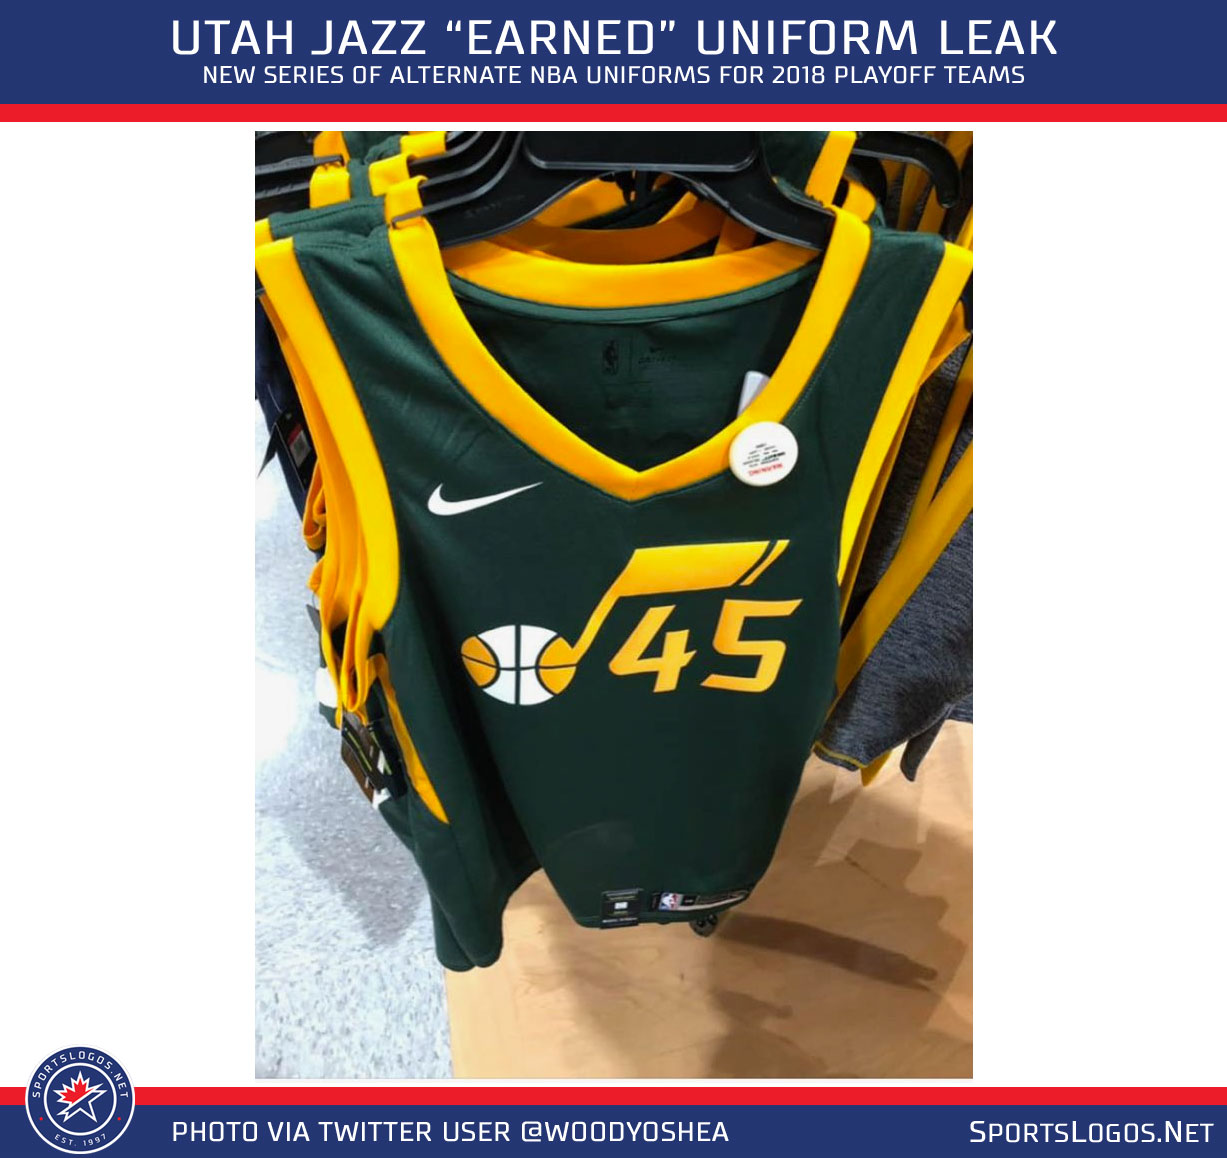 wholesale dealer e3877 07e26 New Earned Uniforms for Heat, Jazz, Warriors Leak | Chris ...